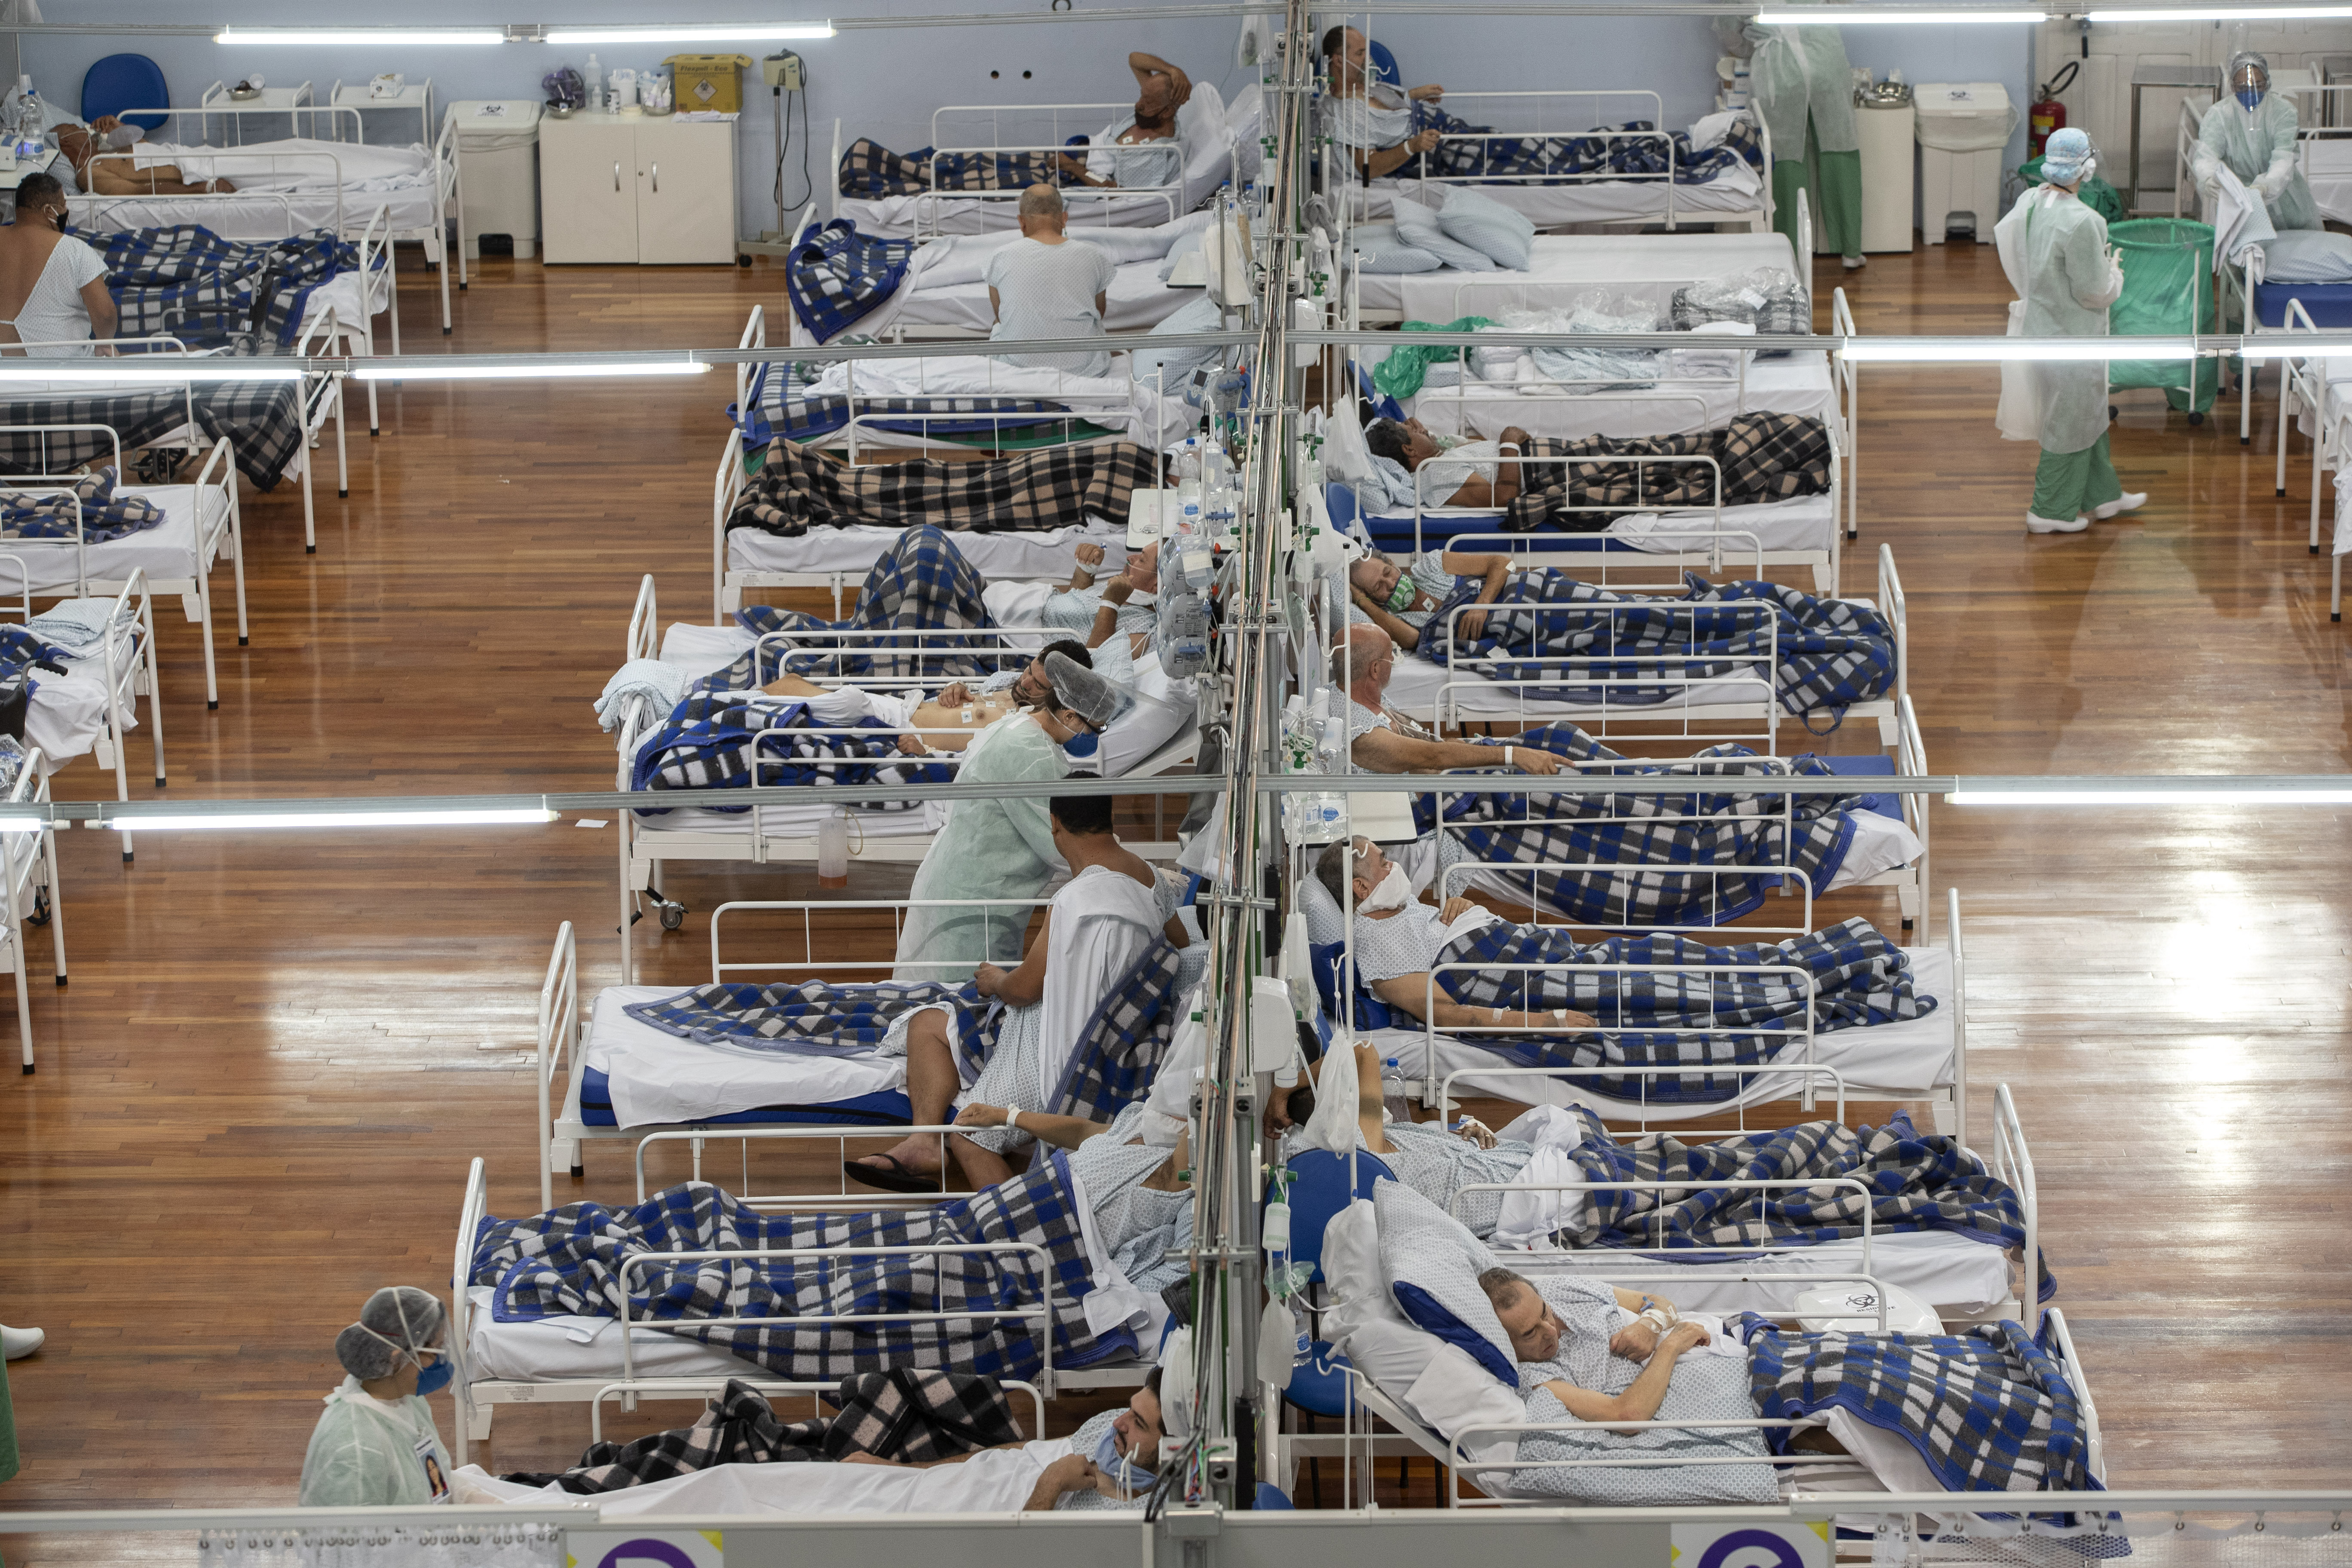 COVID-19 patients lie on beds in a field hospital built inside a gym in Santo Andre, on the outskirts of Sao Paulo, Brazil, Tuesday, June 9, 2020. (AP Photo/Andre Penner)